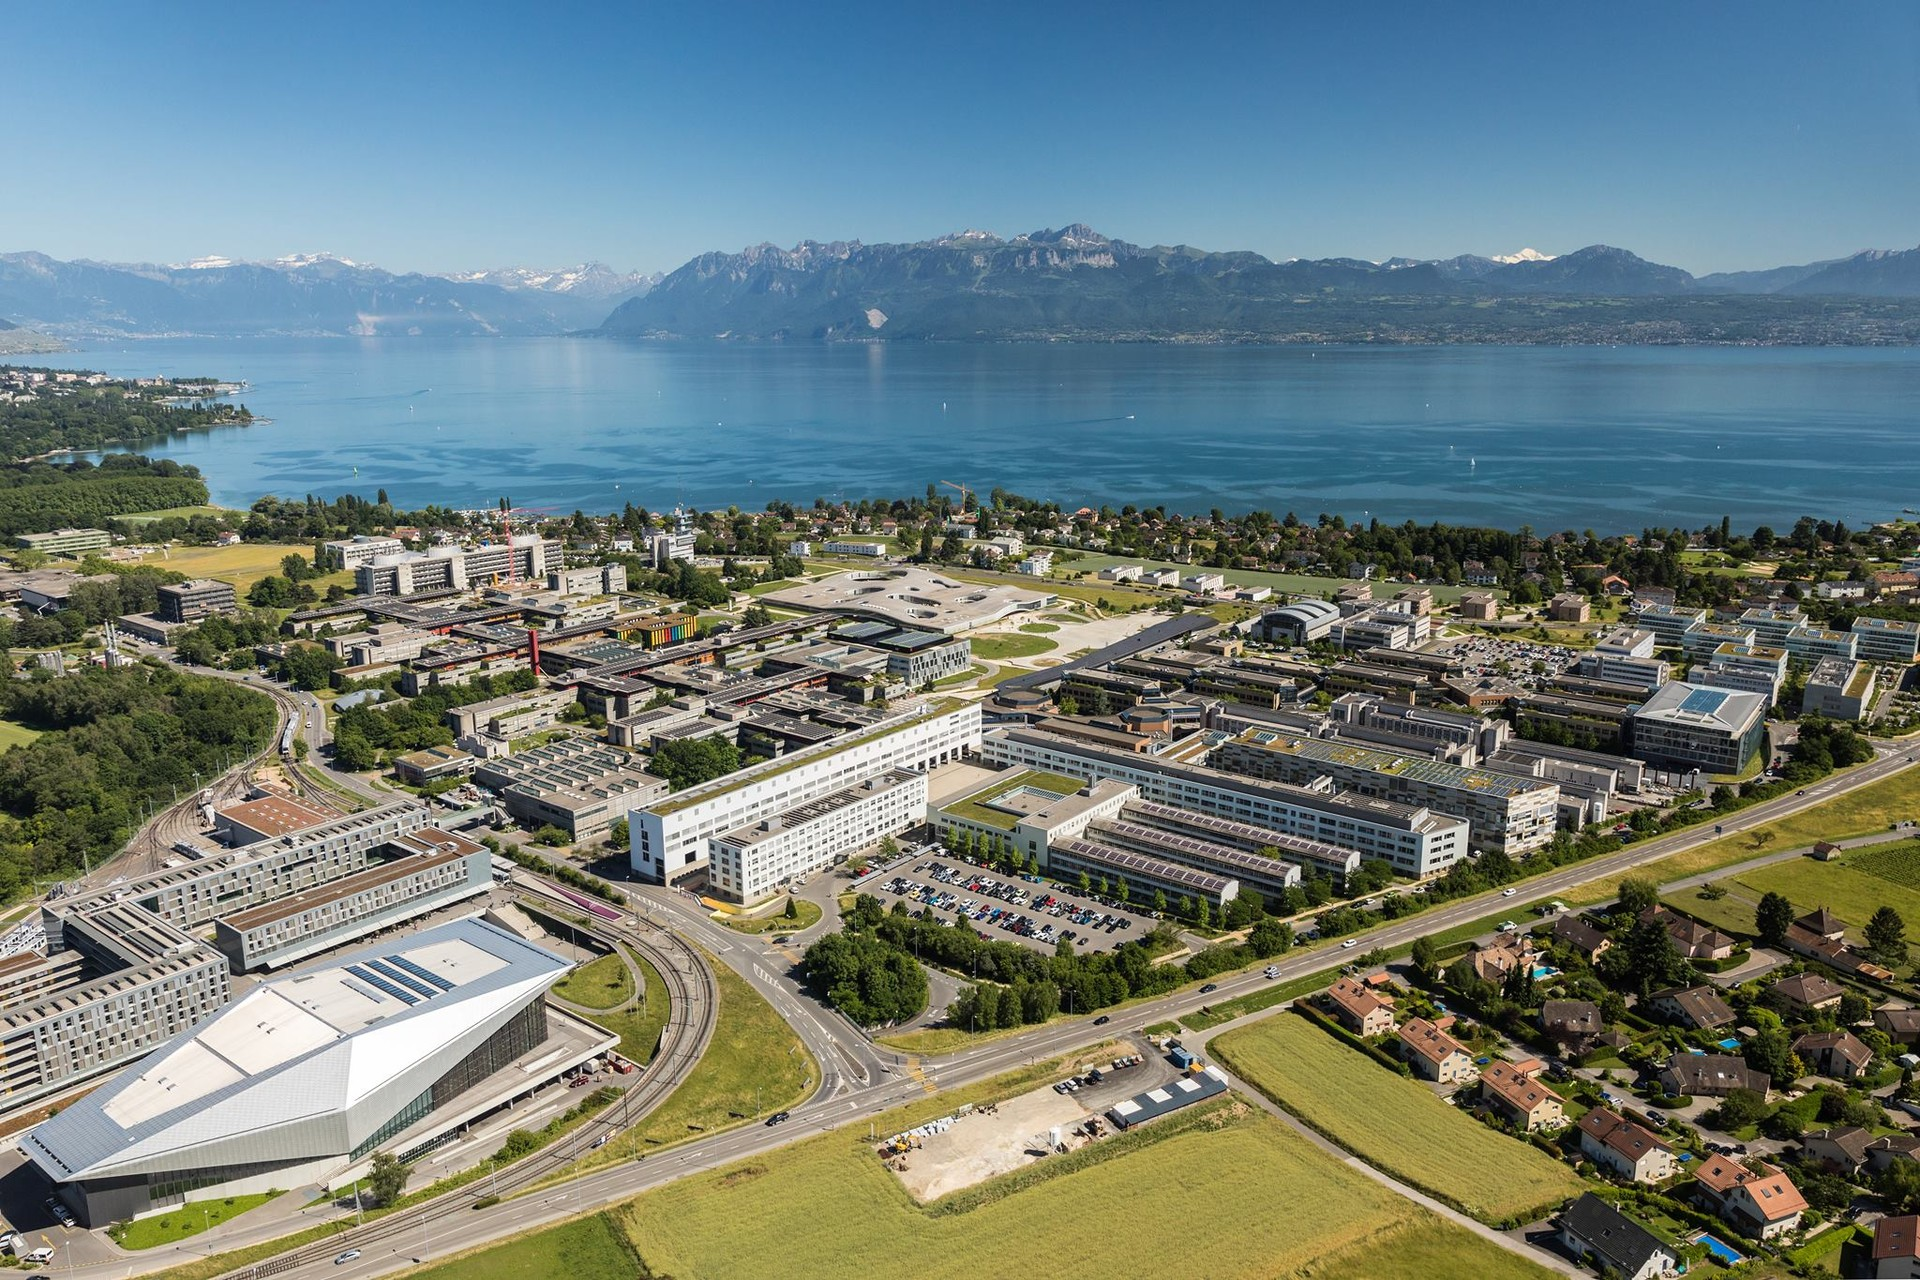 Experience at the Federal Polytechnic of Lausanne, Switzerland by Julie